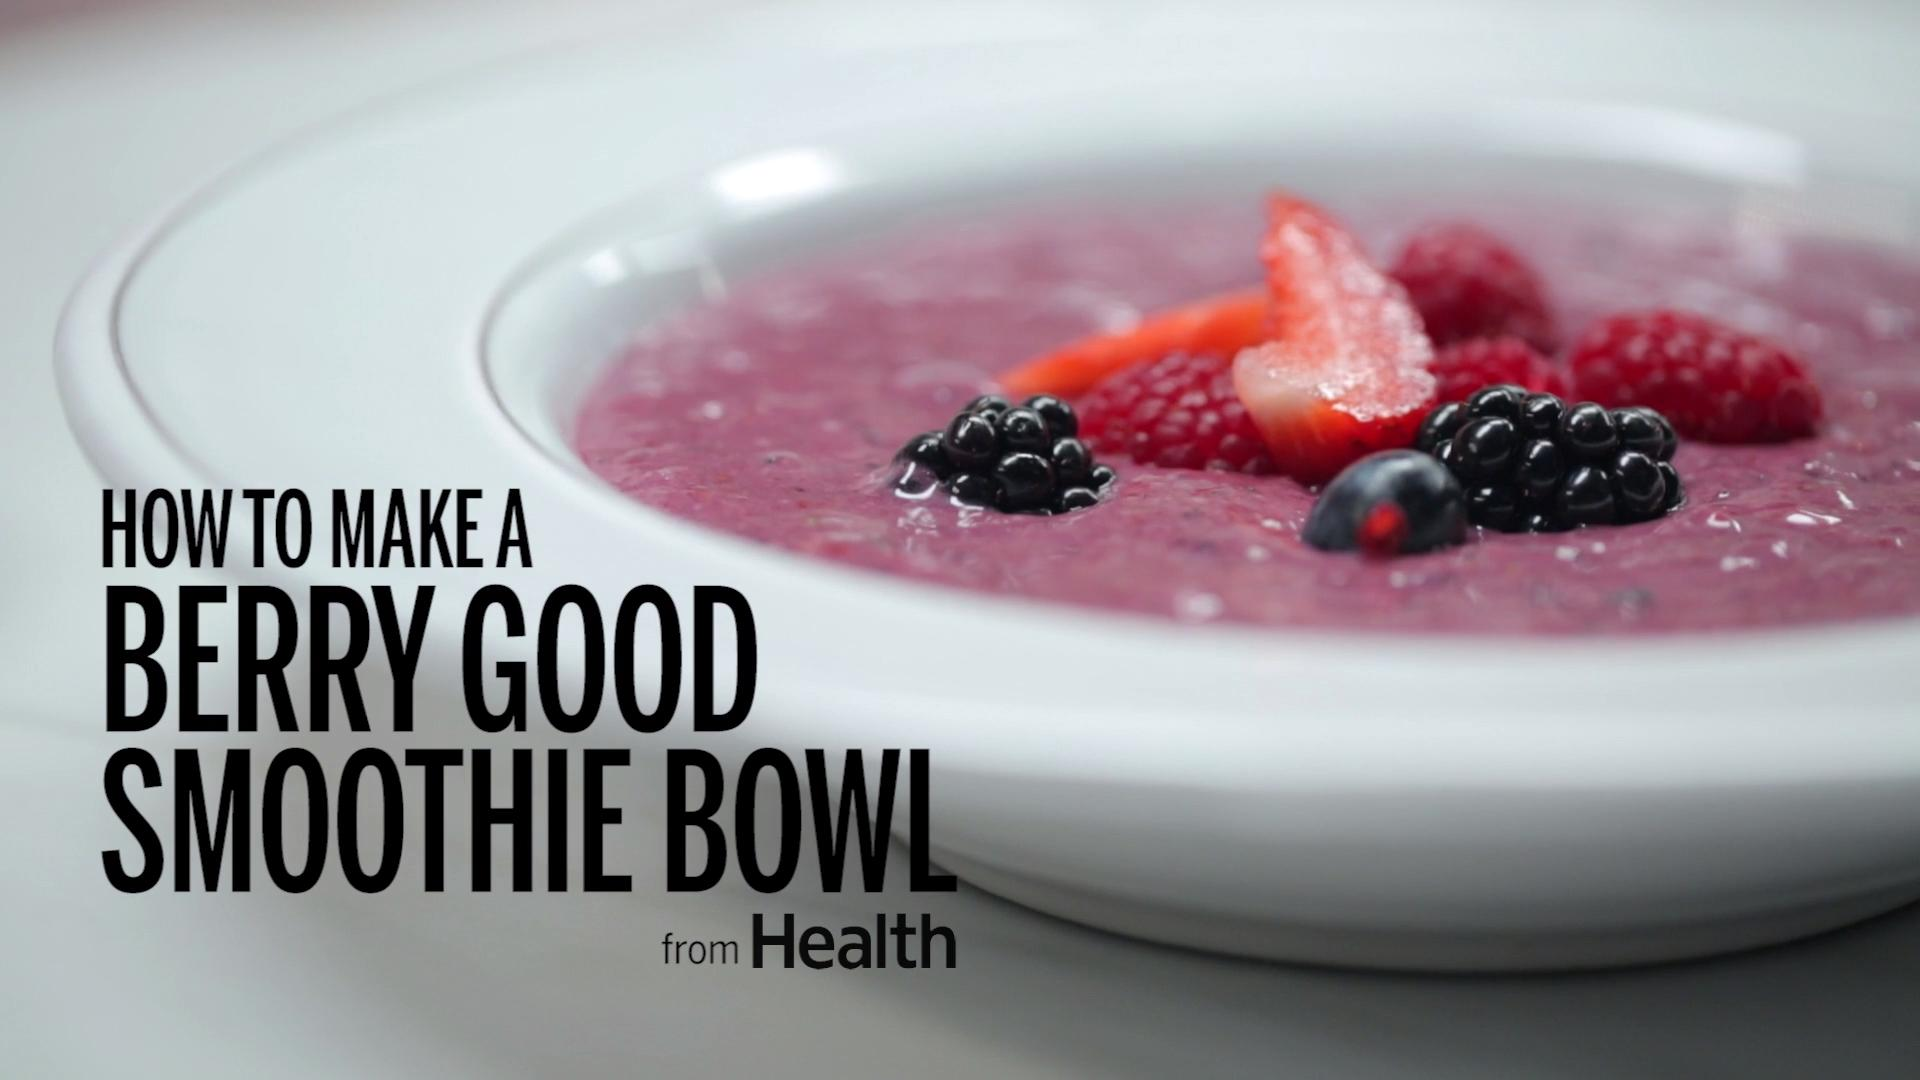 Berry Good Smoothie Bowl